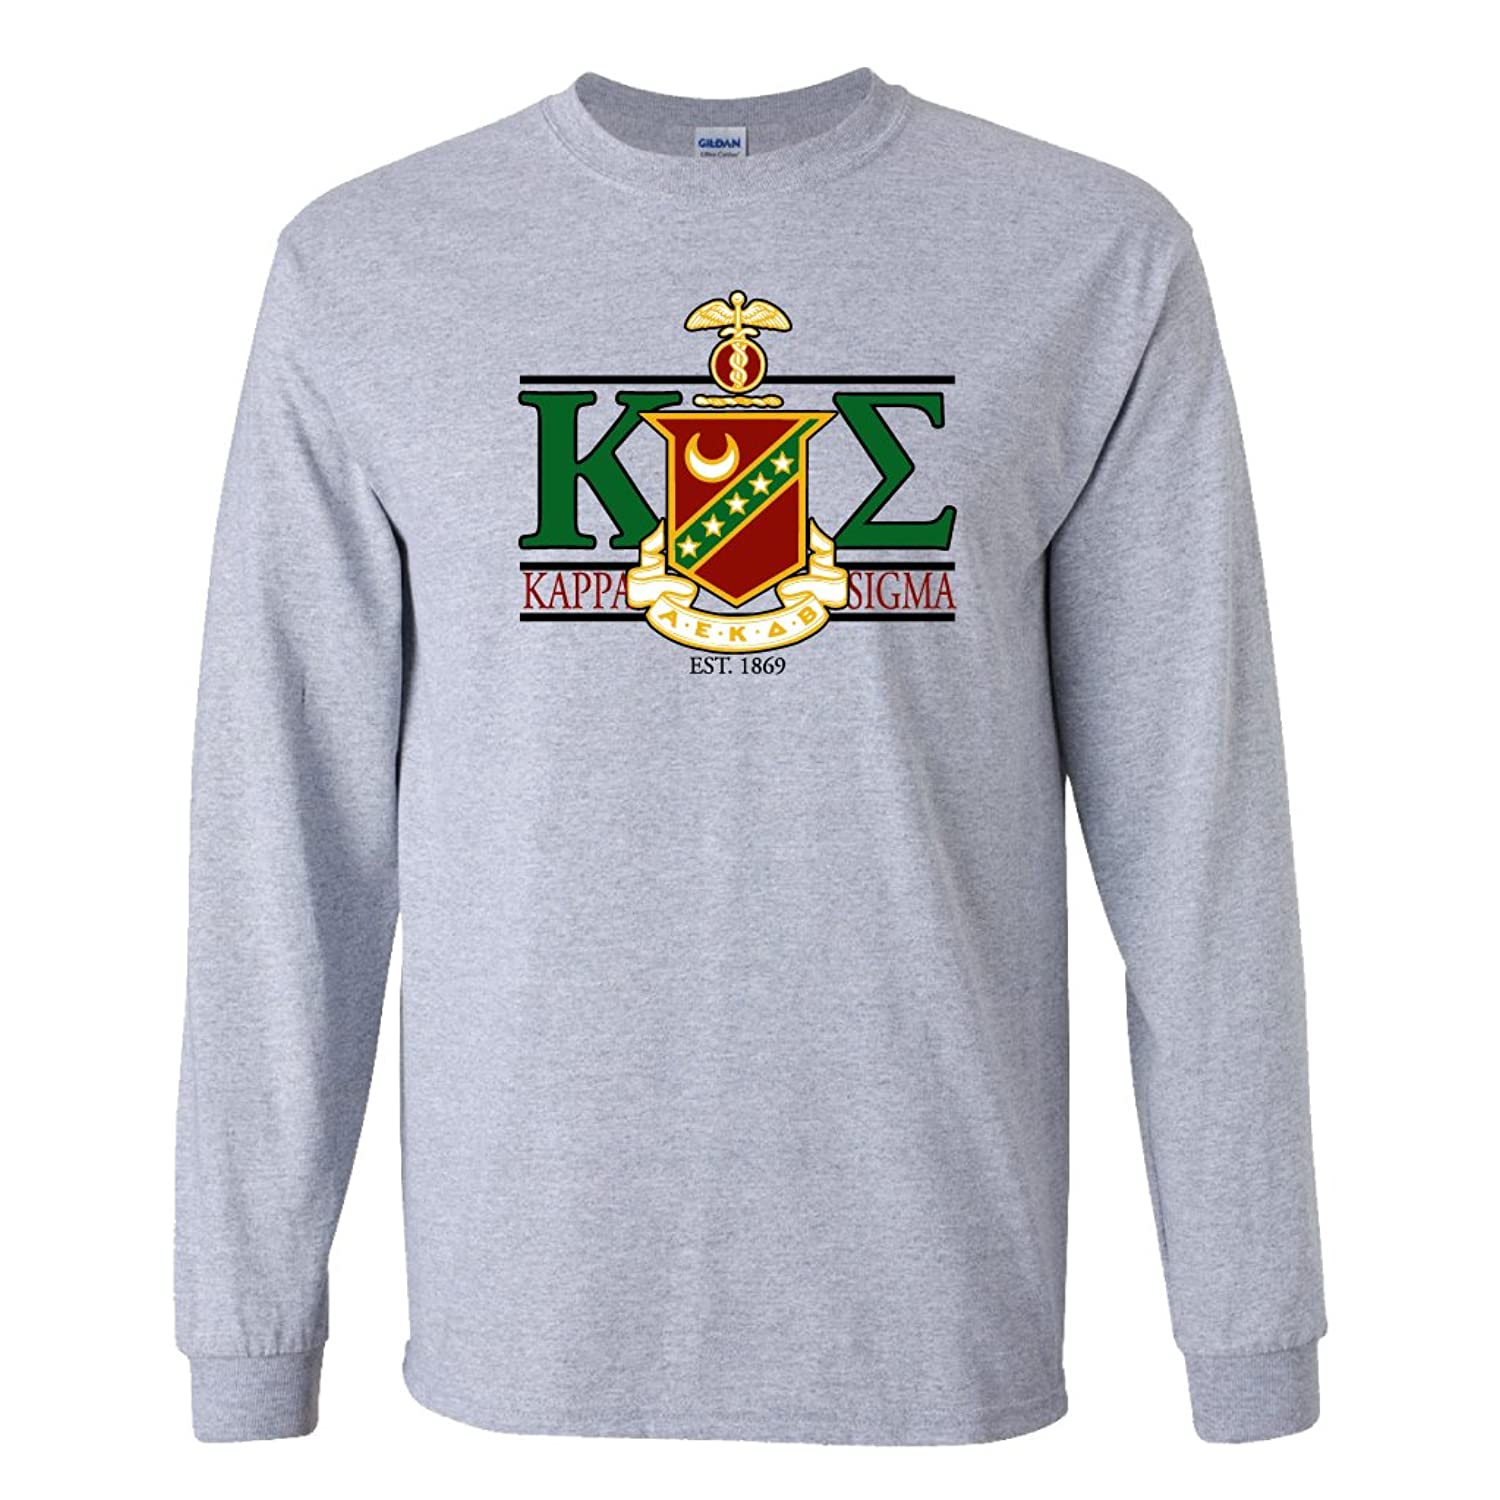 Design t shirt ultras - Amazon Com Kappa Sigma Long Sleeve T Shirt Greek Letters With Large Crest Design Clothing